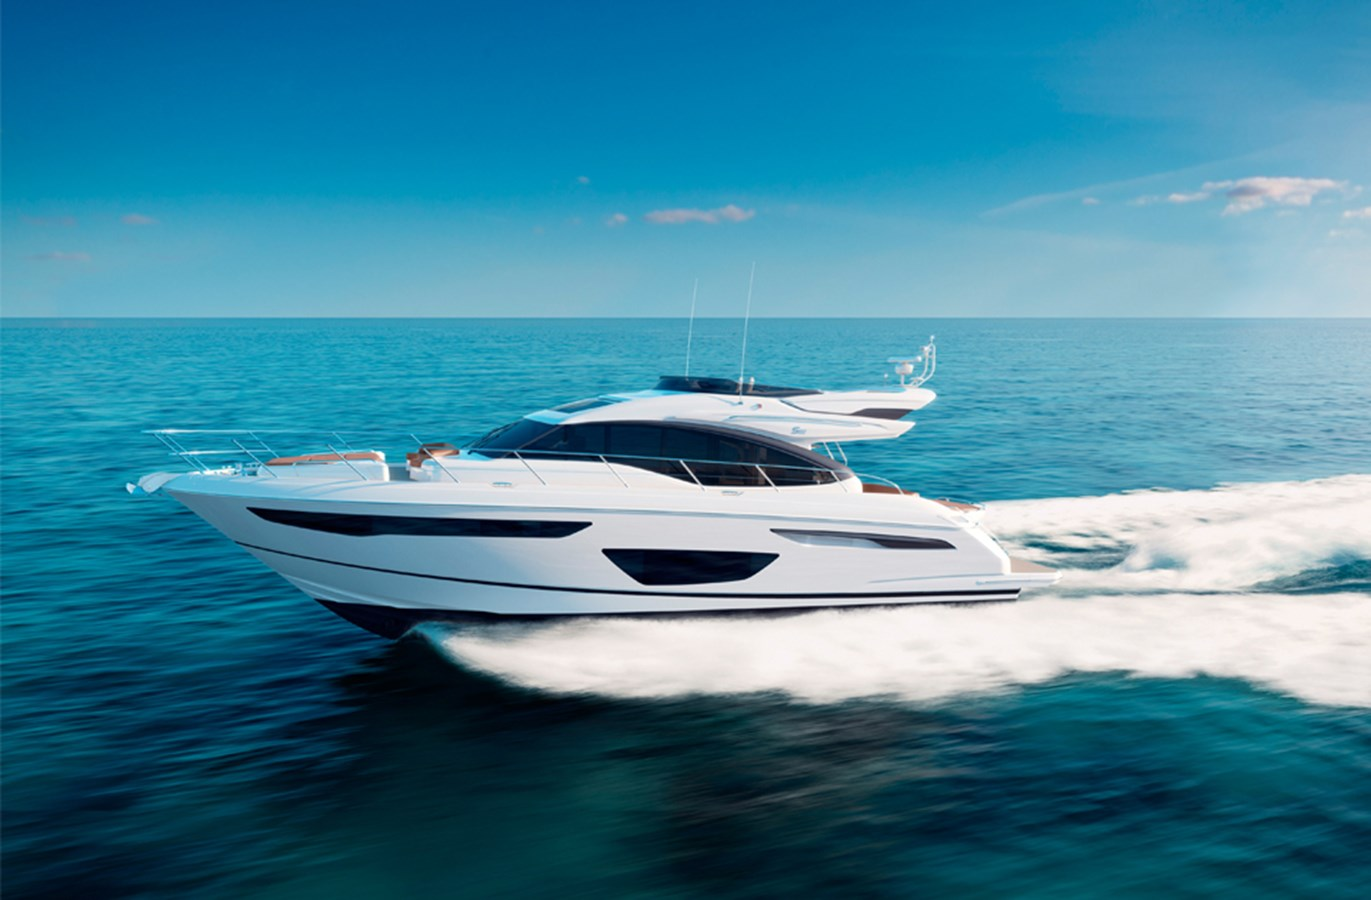 New Princess S60 Yachts For Sale